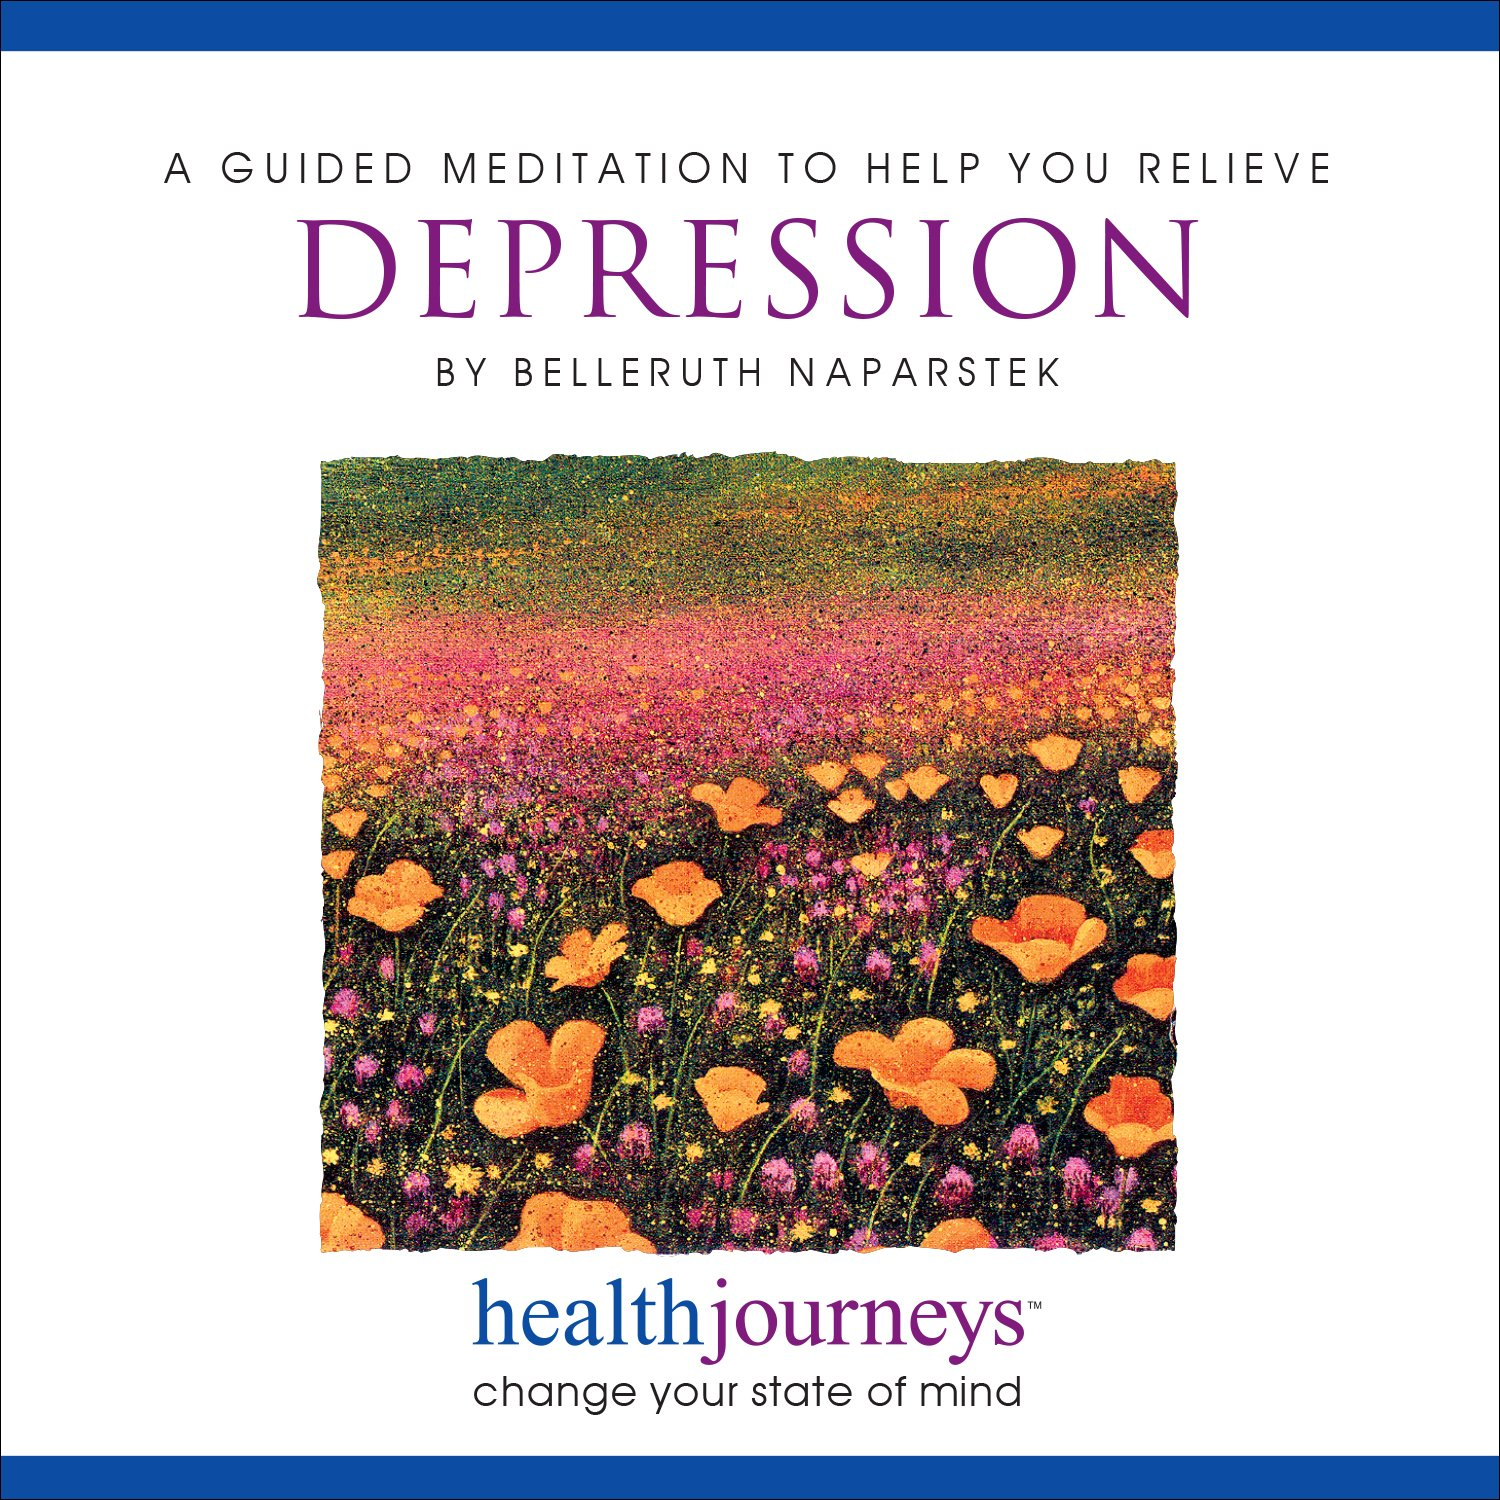 A Guided Meditation to Help Relieve Depression- Guided Imagery to Reduce Negative Thinking, Self-Criticism, Discouragement, and Improve Mood, Hope, Sense of Well Being by Health Journeys